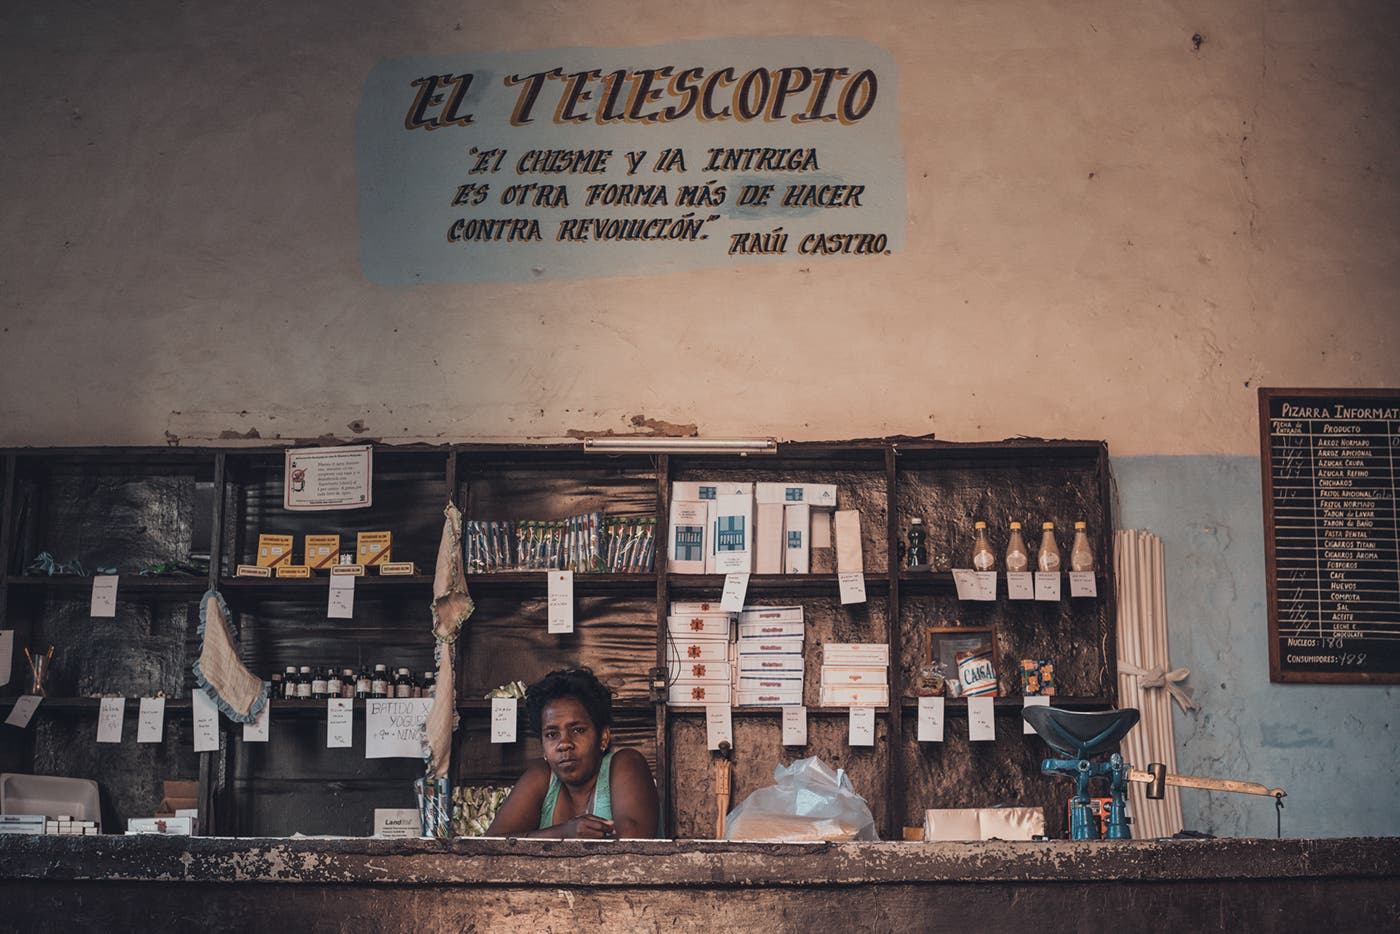 The Faces of Stijn Hoekstra's Cinematic Cuba Show Connection Between Subject and Photographer